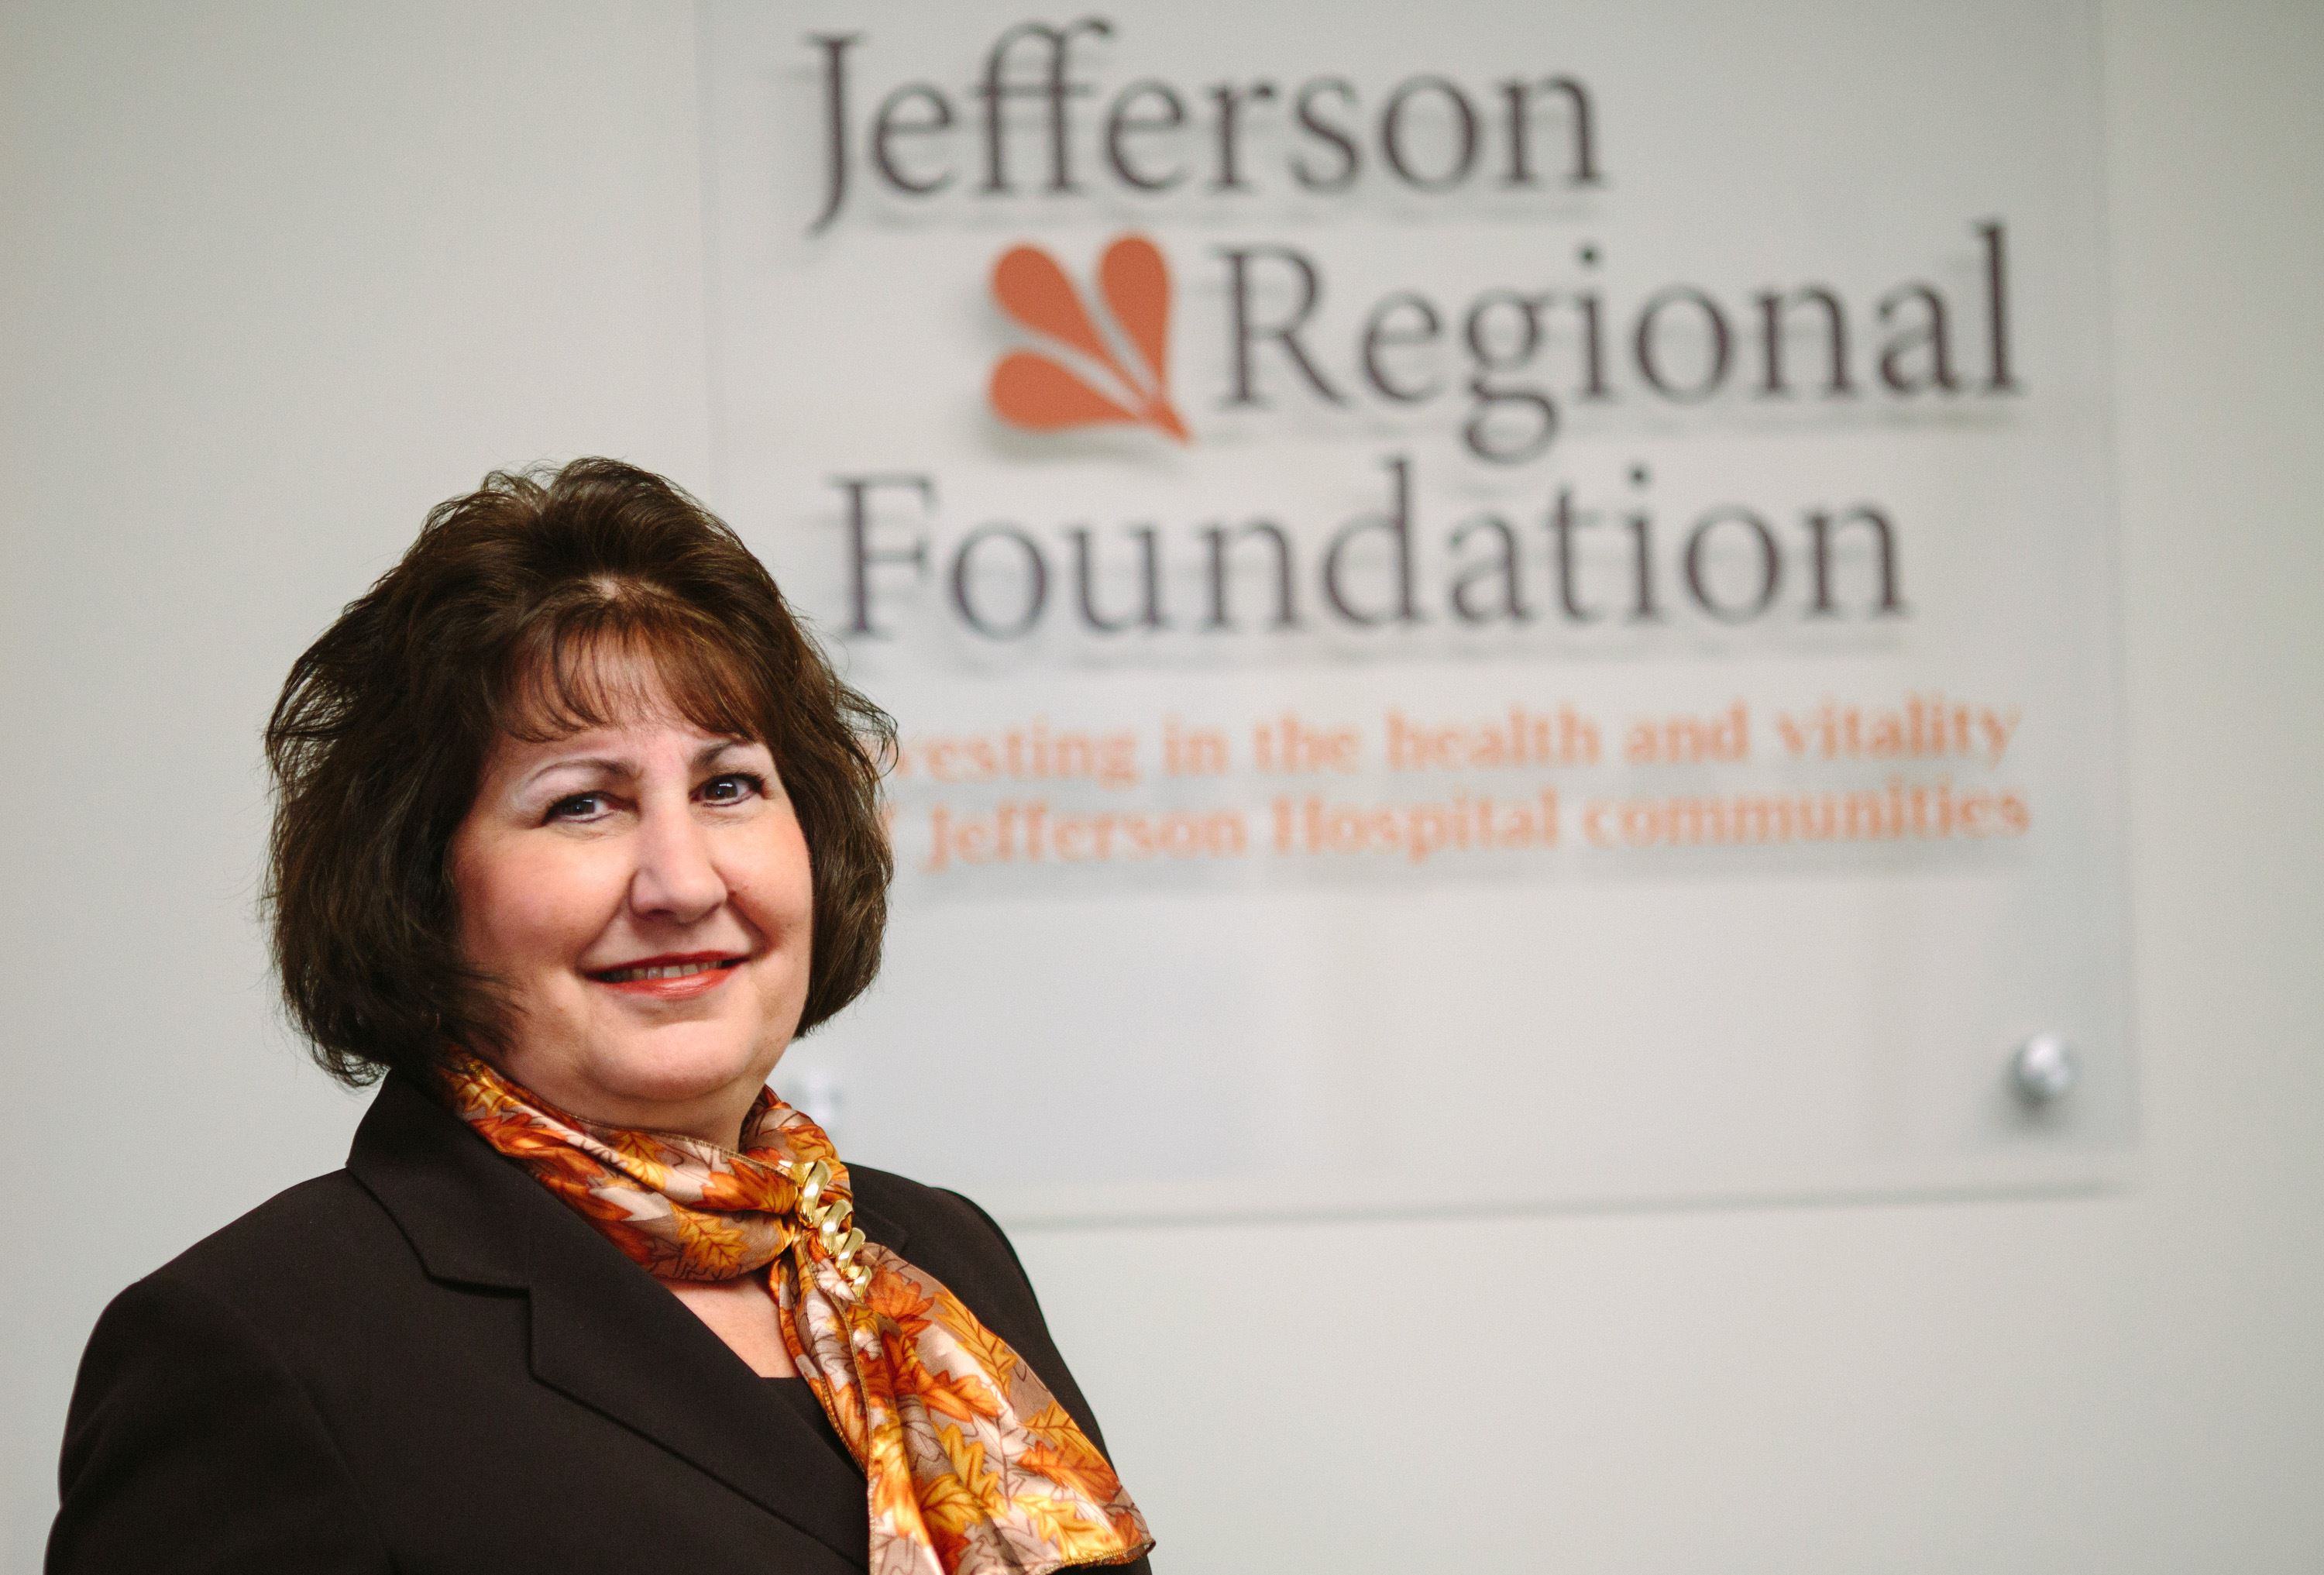 Mary Phan-Gruber, Executive Director of the Jefferson Regional Foundation